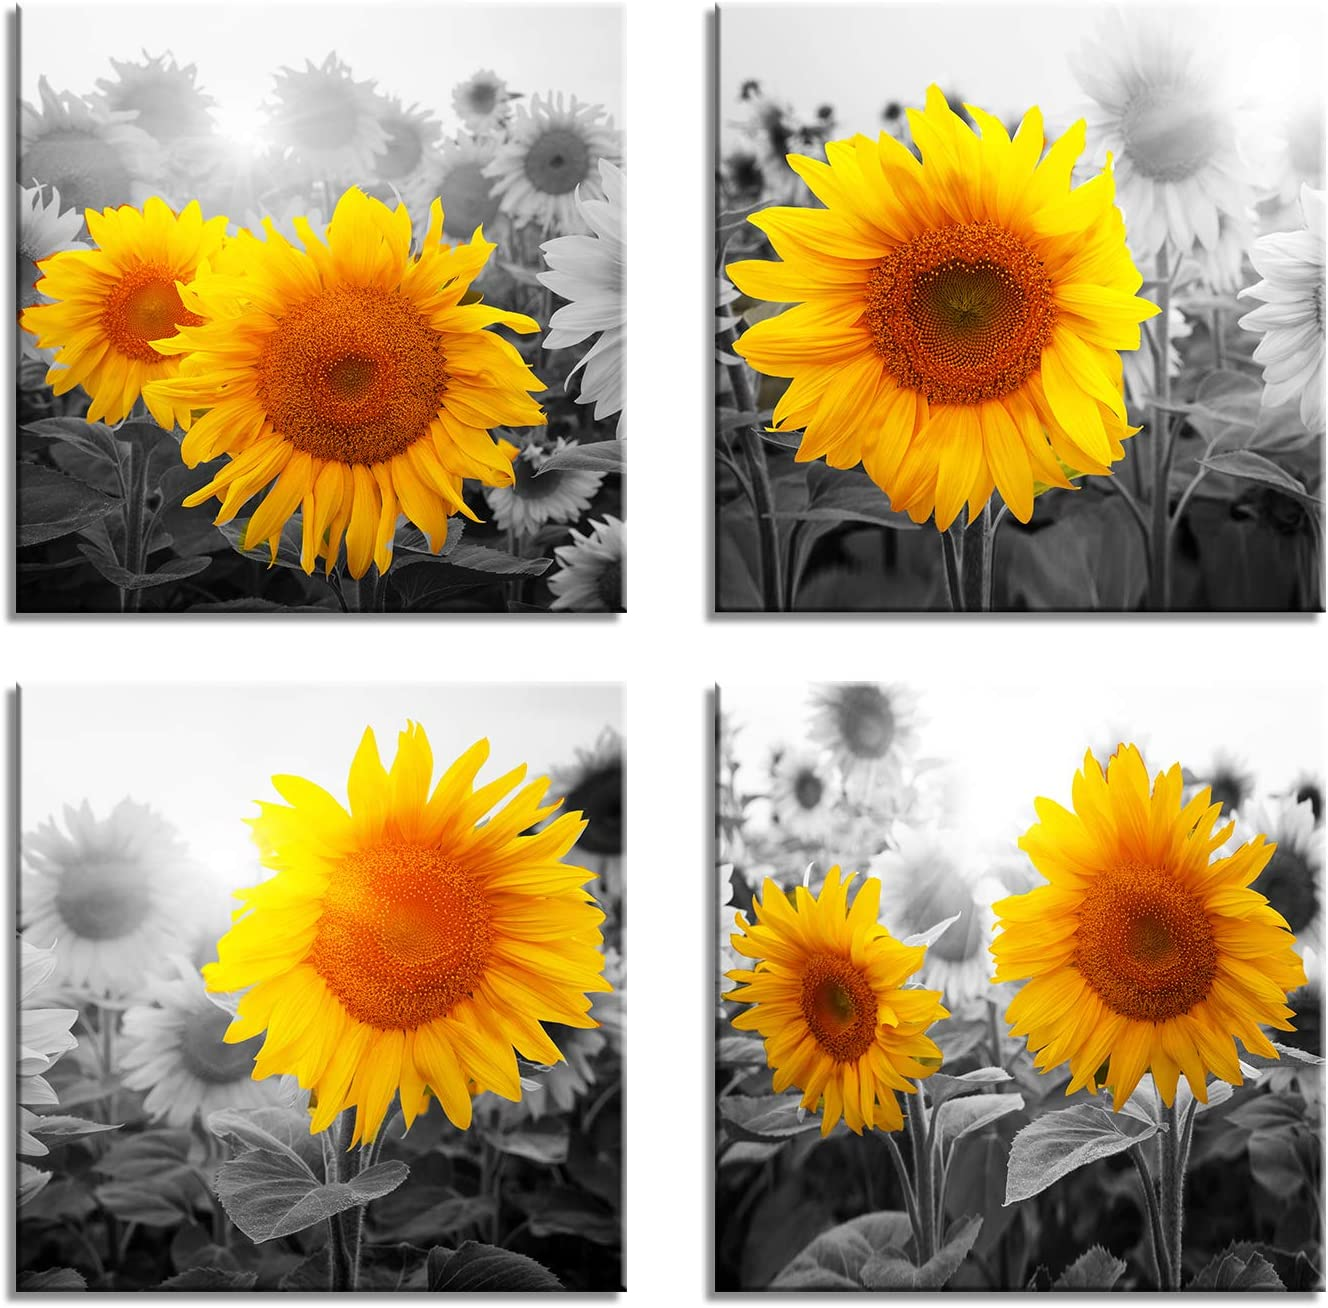 Amazon Com Canvas Wall Art For Living Room Bathroom Decor Bedroom Kitchen Artwork Prints Sunflower Flowers Painting 12 X 16 3 Pieces Modern Framed Office Home Decorations Family Picture Posters